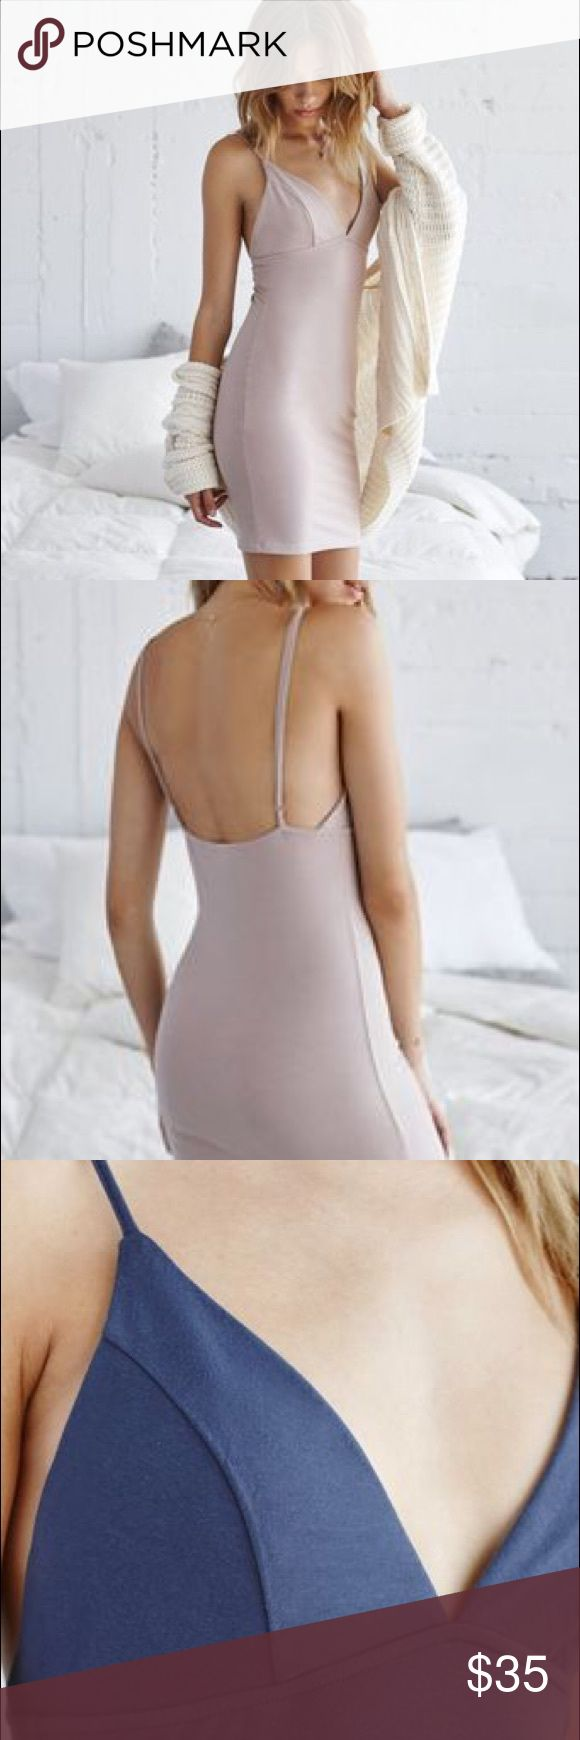 Nude Bodycon Dress Essentials experts Me To We create a curve-hugging look that's perfect for all-day lounging. The Cupped Knit Bodycon Dress comes with adjustable spaghetti straps, a form fit and cupped design. Layer this bodycon dress with a chunky cardigan and bare feet for relaxed style PacSun Dresses Mini